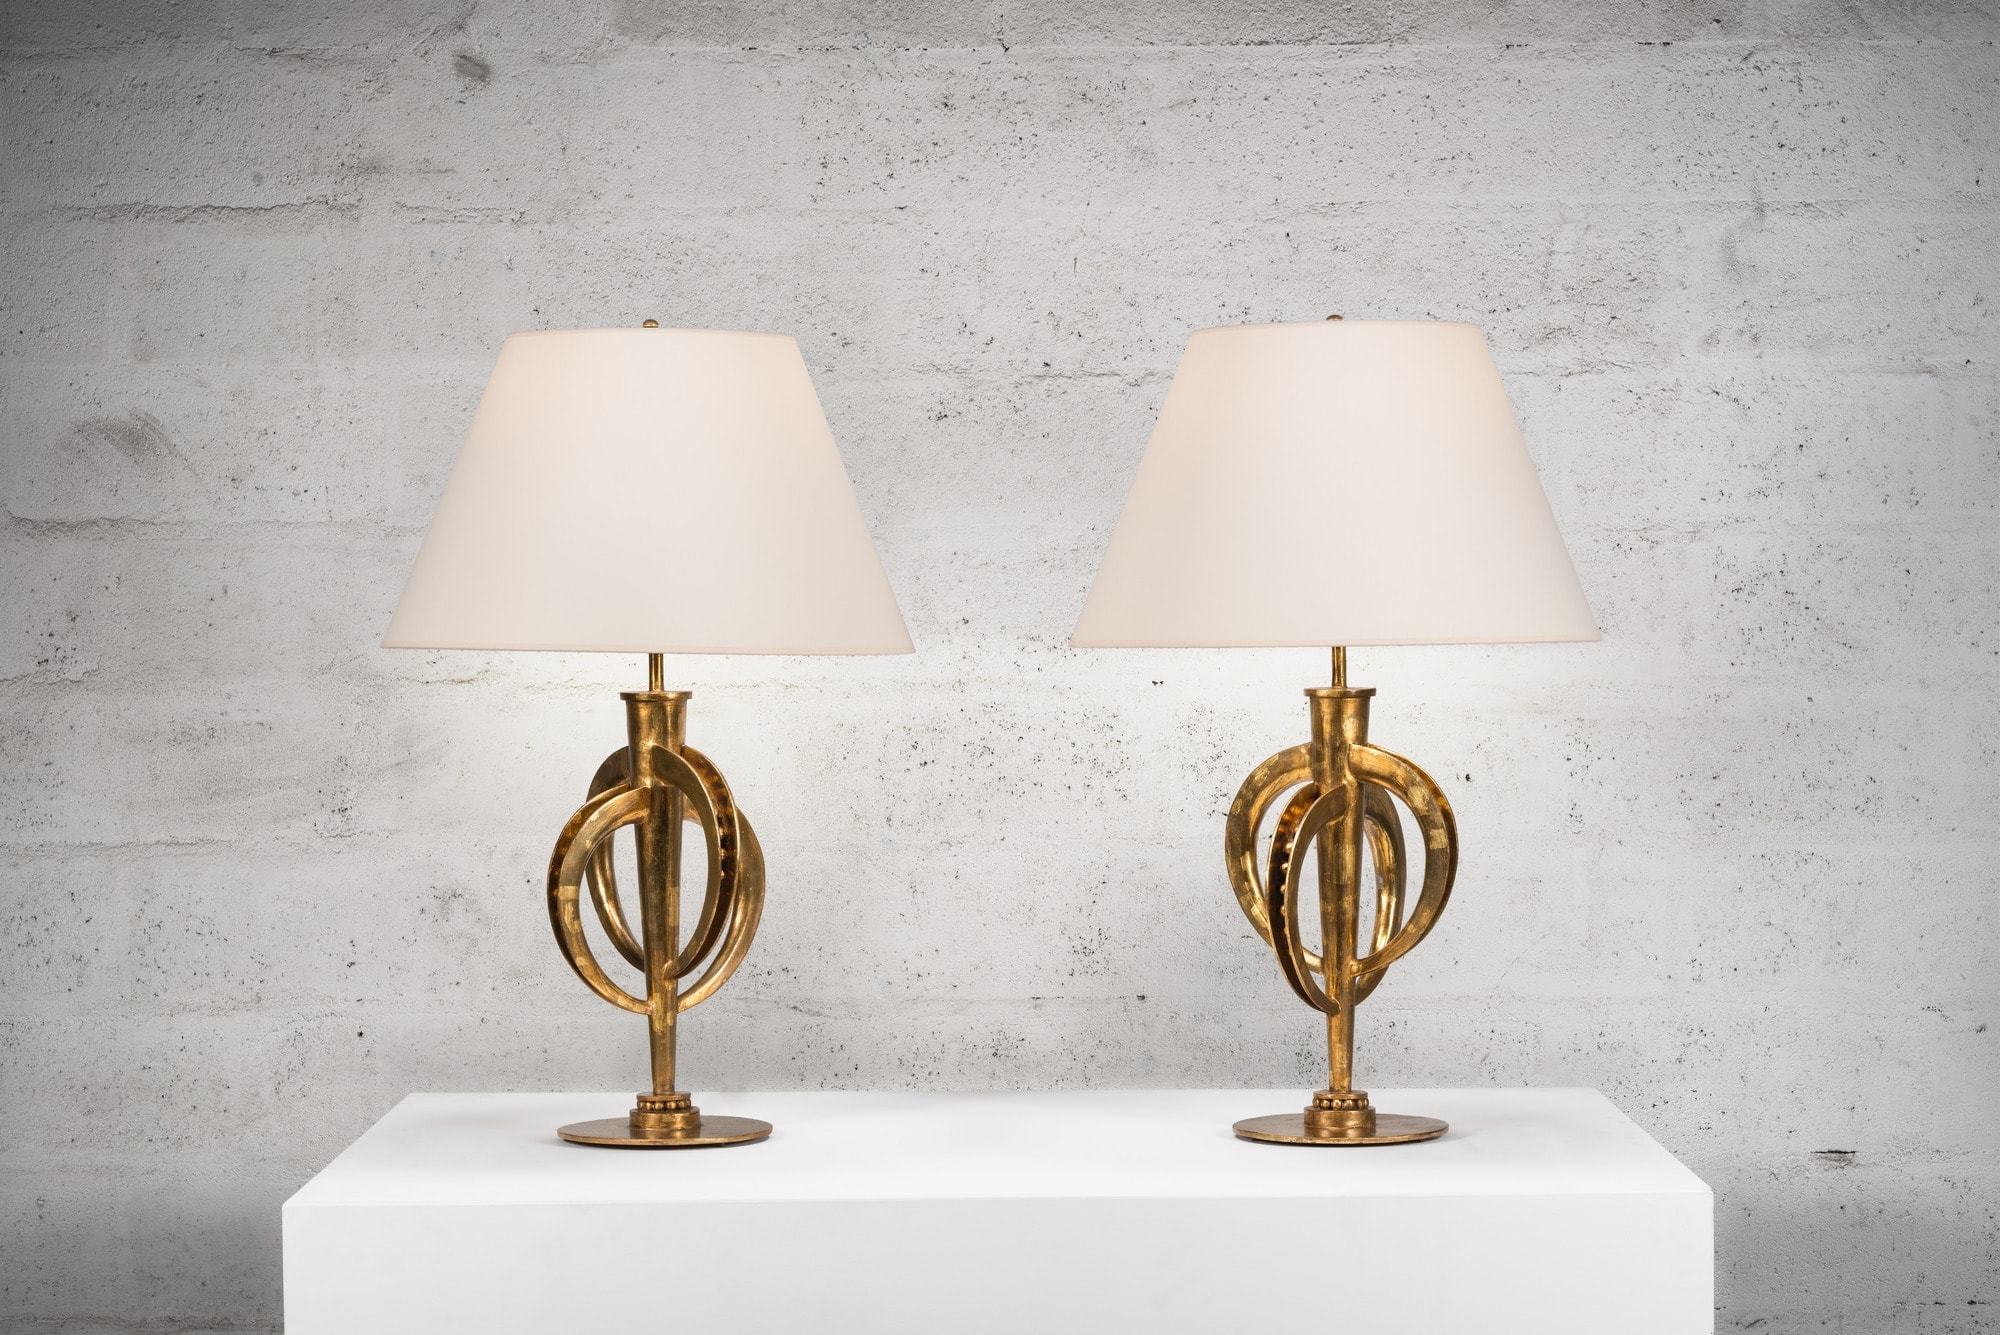 Marc Nicolas Du Plantier, Exceptional pair of lamps, vue 02